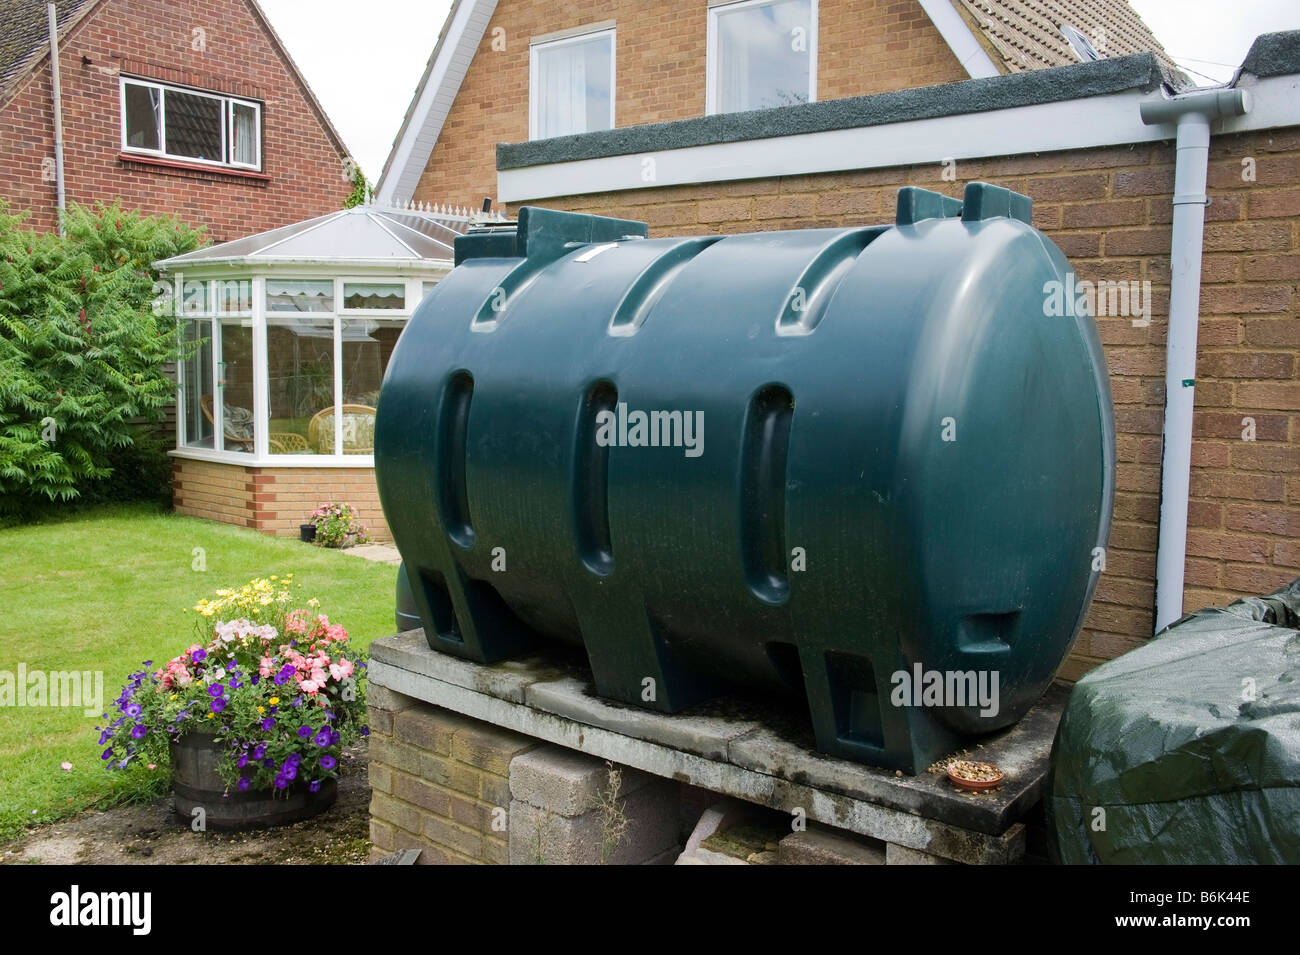 Domestic Home Heating Oil Tank Stock Photos & Domestic Home Heating ...